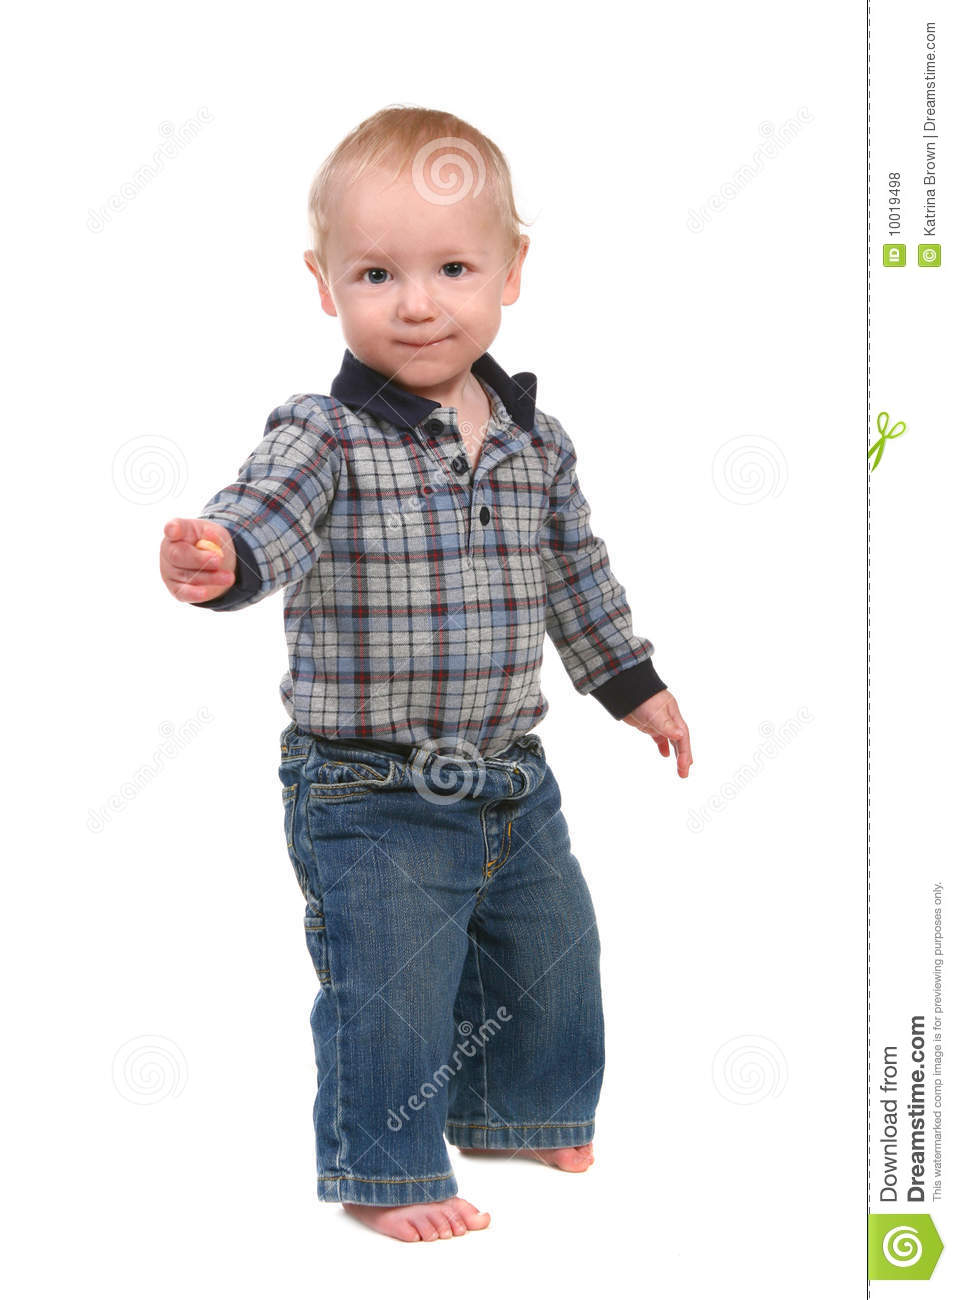 Adorable Baby Toddler Boy Standing Up Royalty Free Stock ...